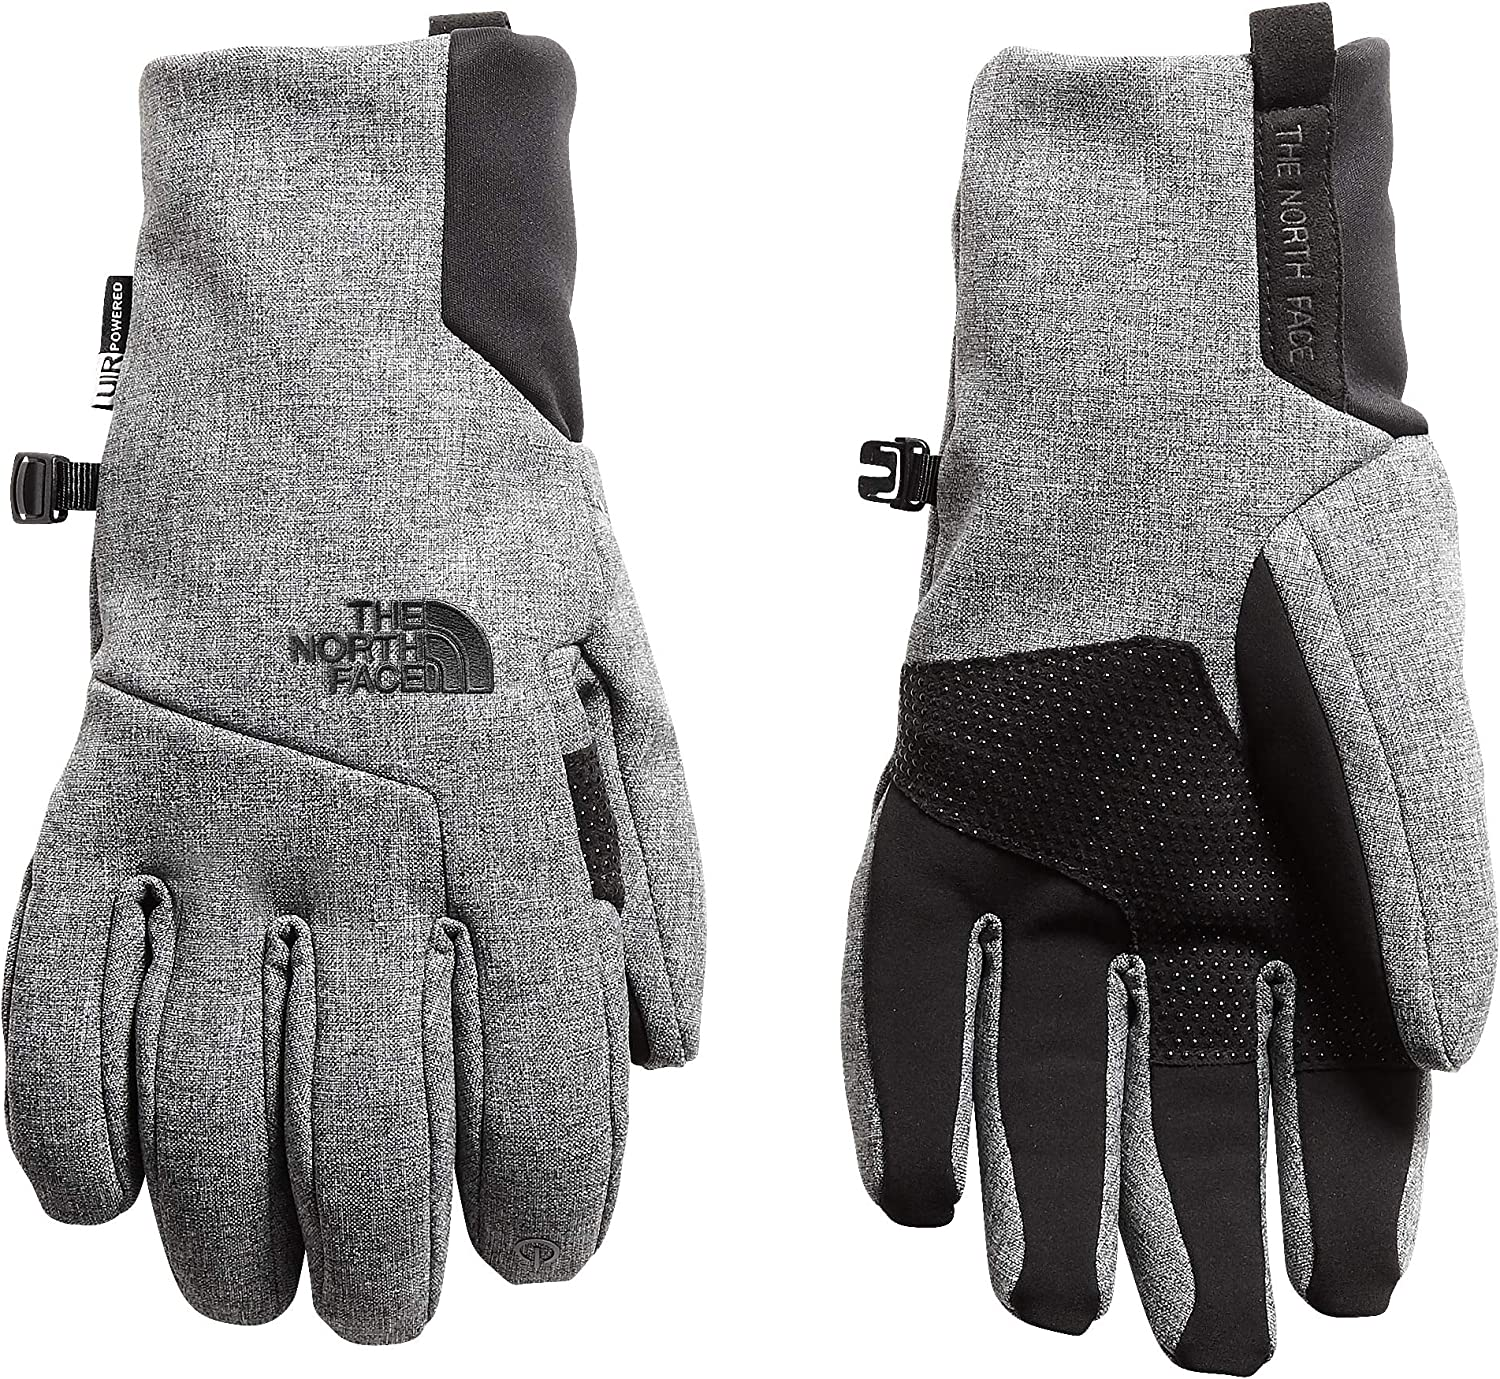 Now on sale The North Face Women's Direct store Etip Glove Apex